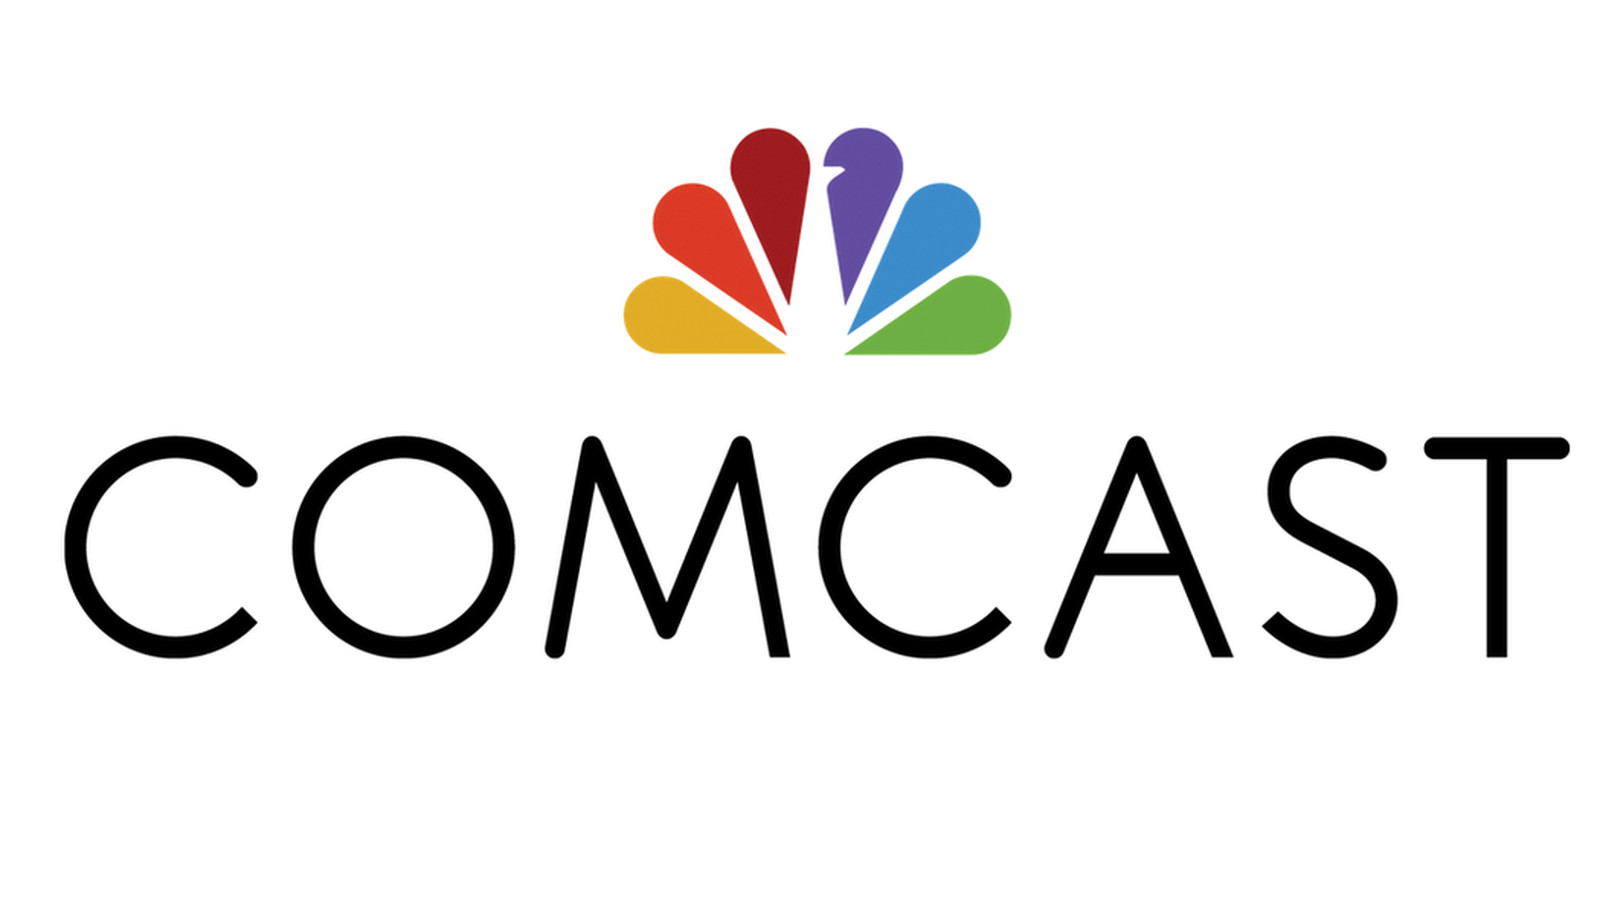 Comcast adopts NBC peacock as part of new logo - The Verge